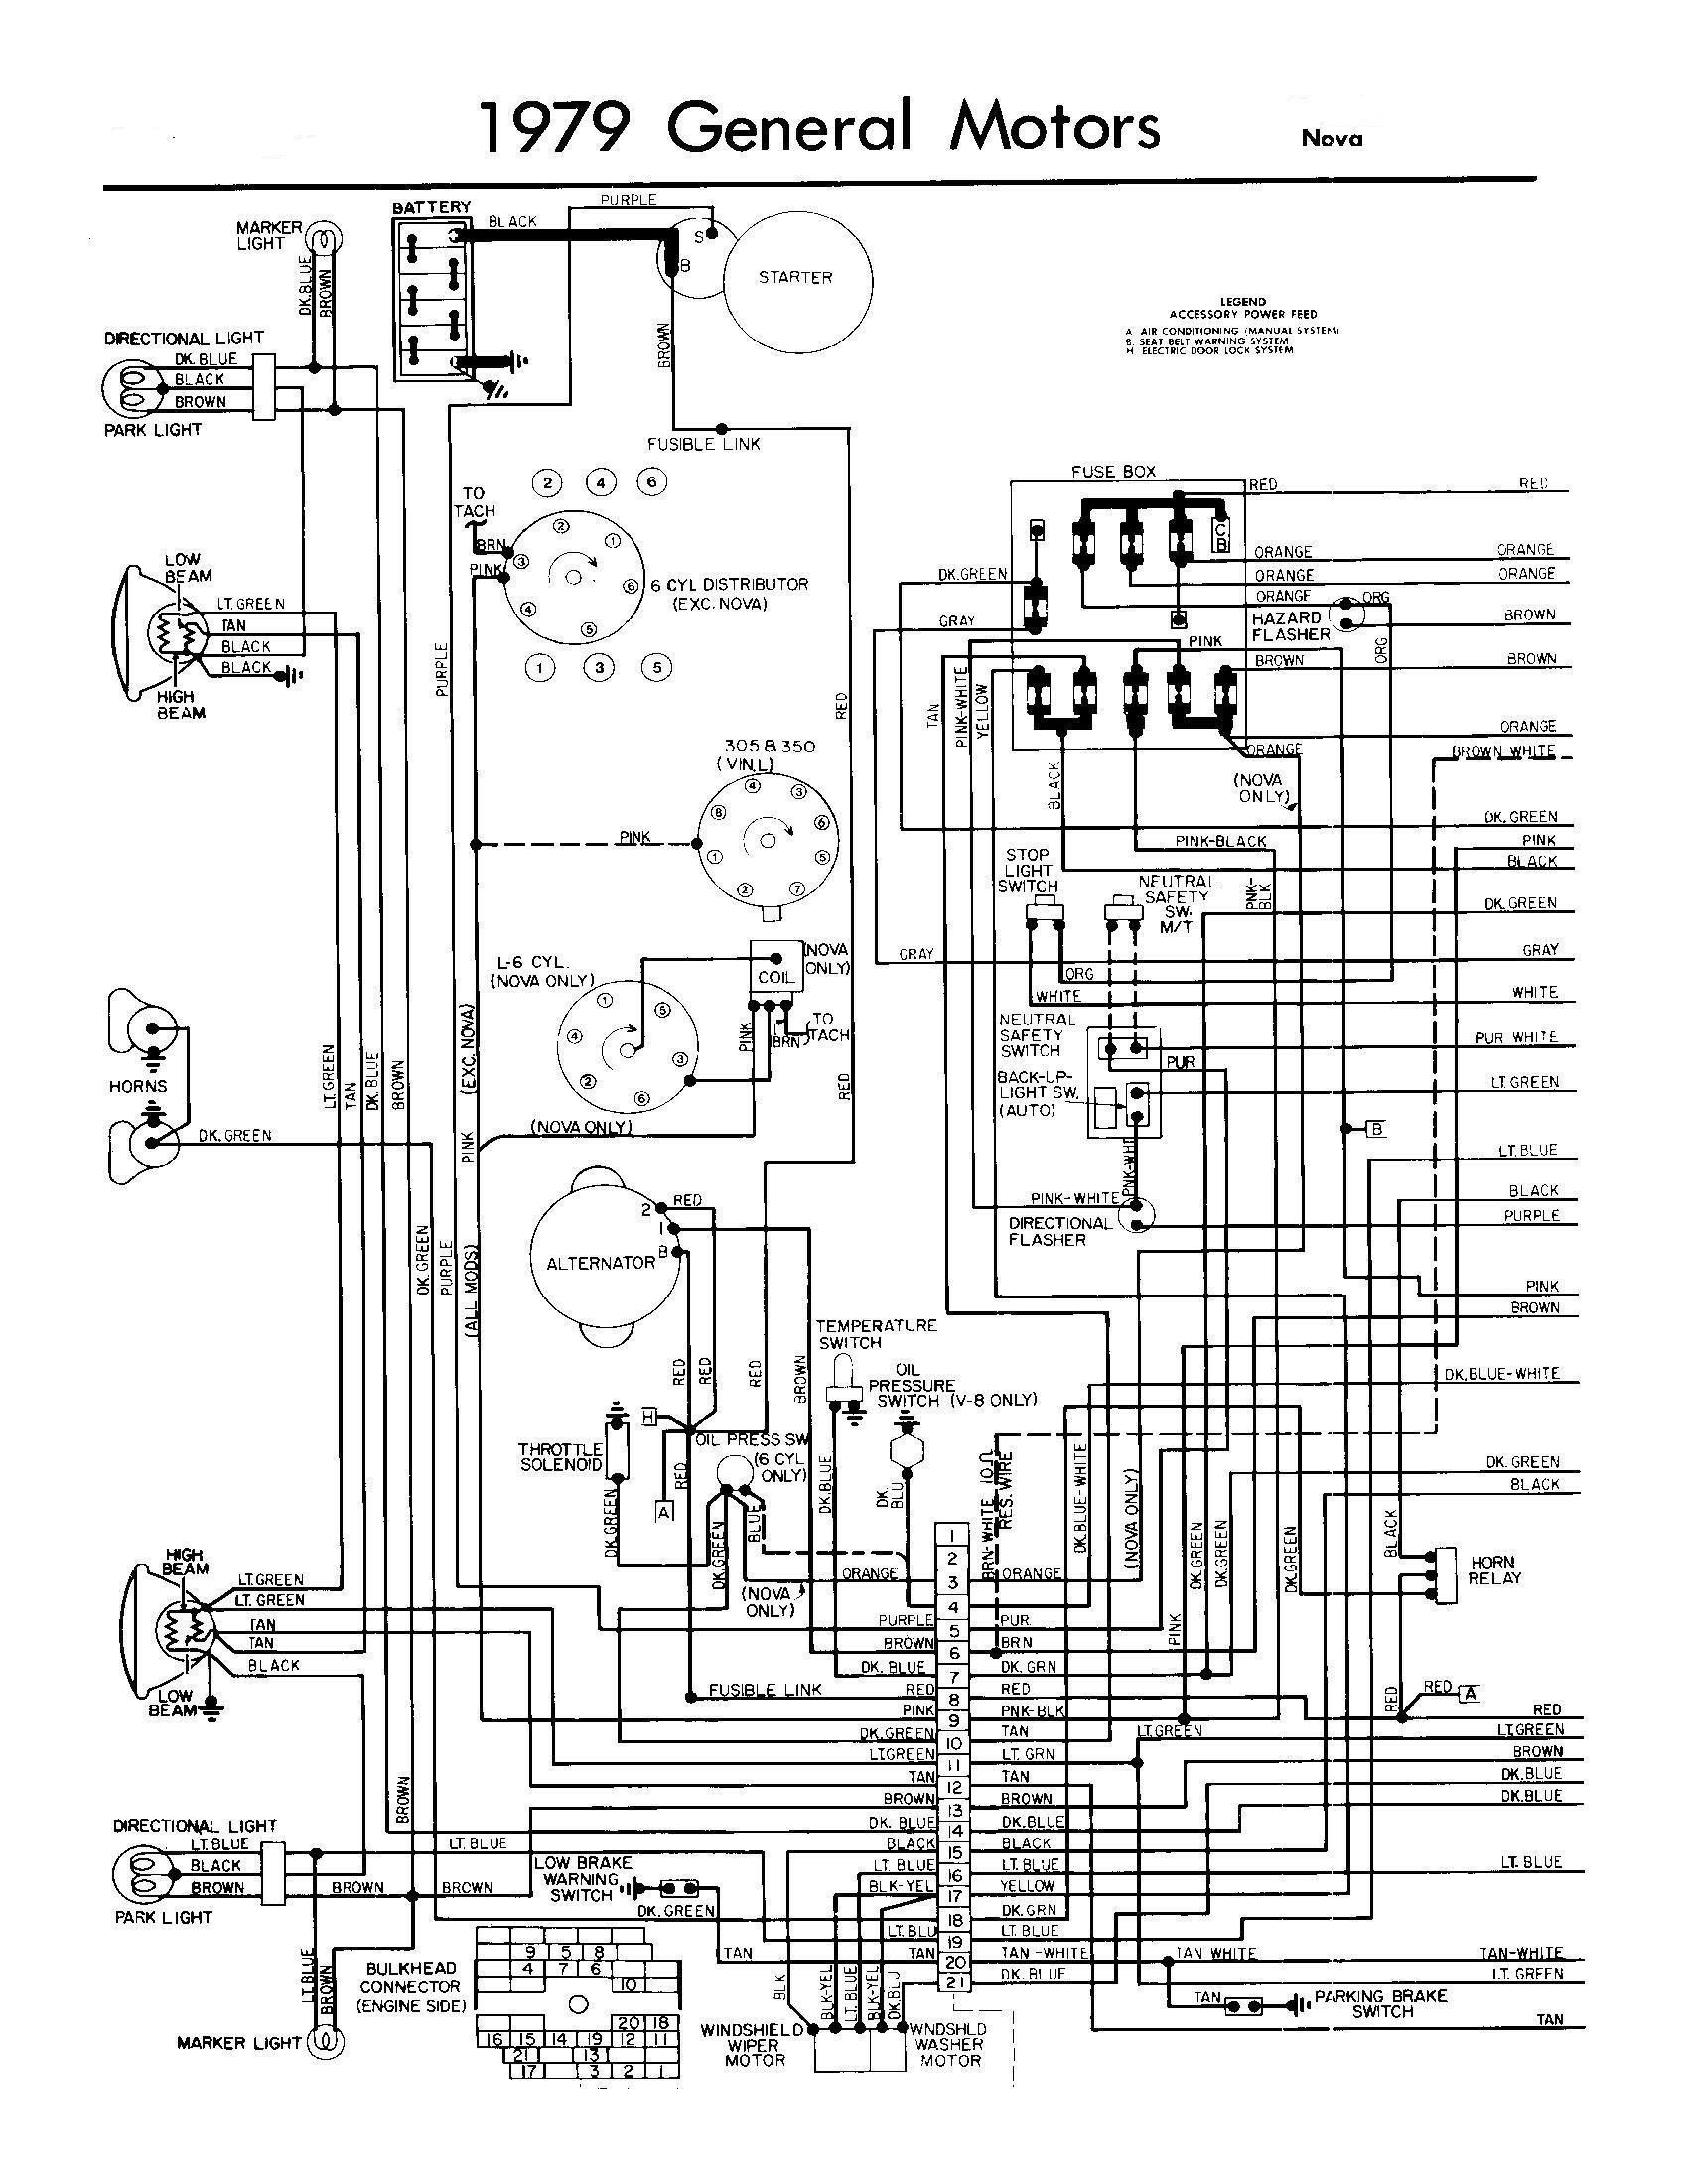 perfect ford alternator wiring diagram 85 ford bronco wiring diagram wiring diagram rh 02 ansolsolder co 1982 ford bronco alternator wiring 1978 ford bronco  [ 1699 x 2200 Pixel ]